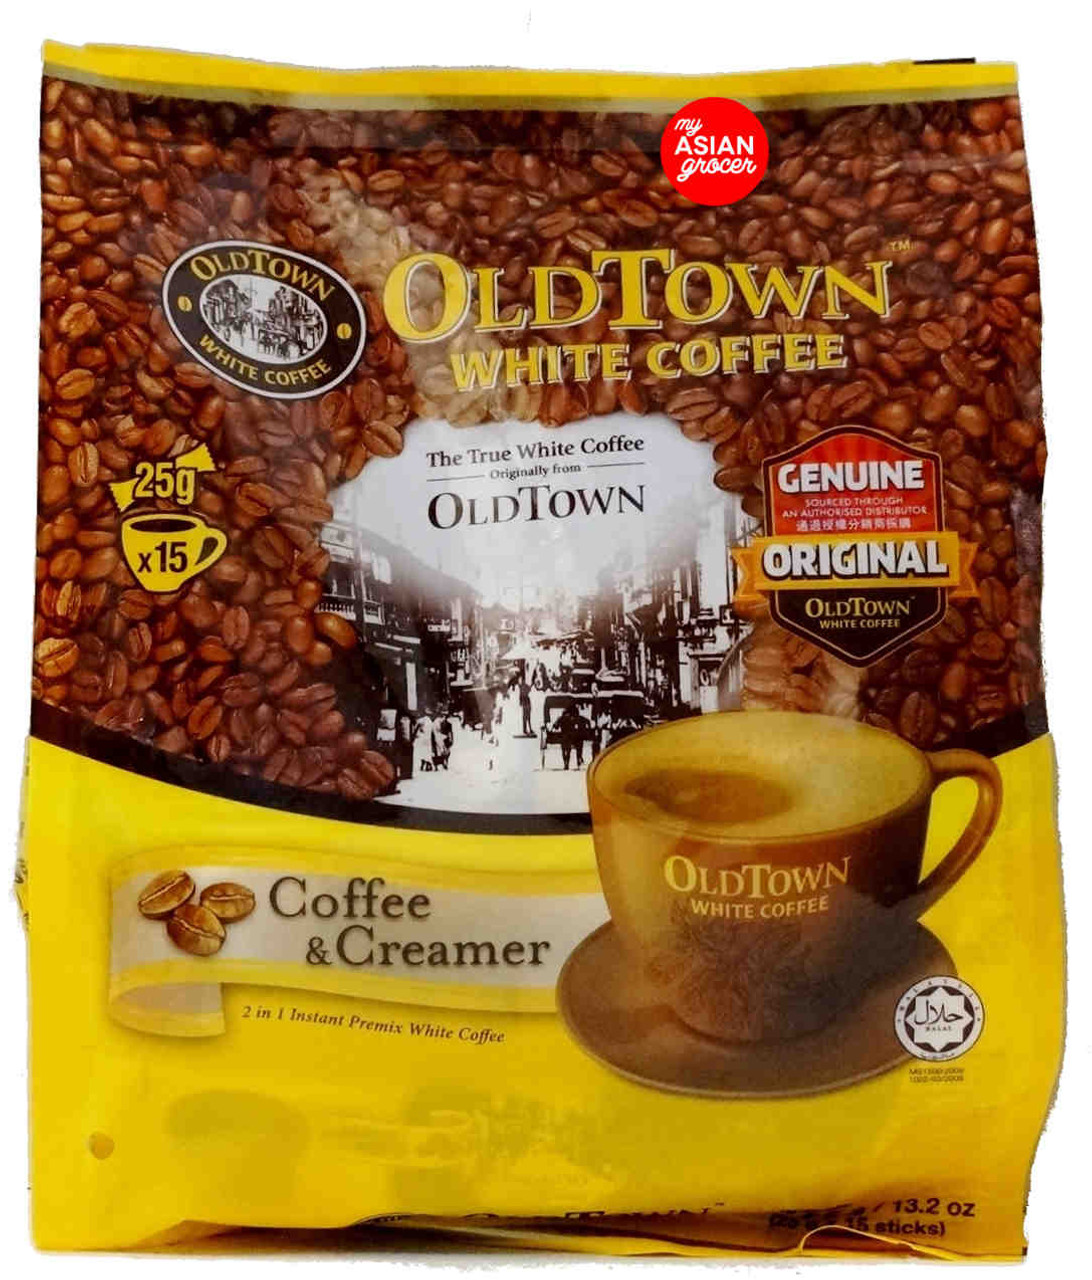 Old Town White Coffee Coffee & Creamer 375g